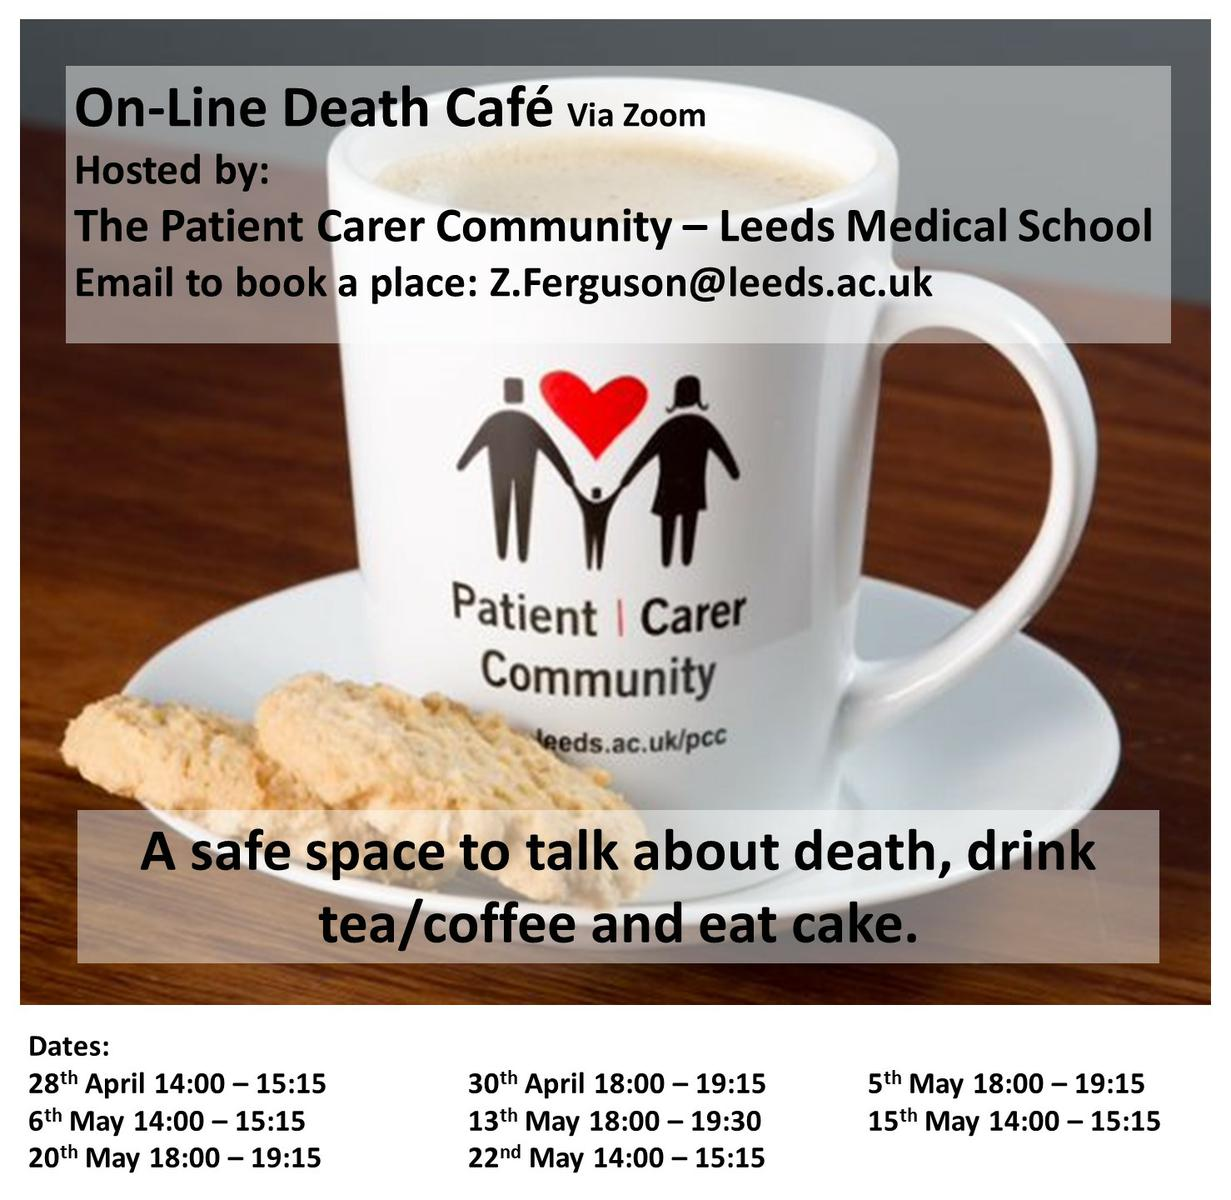 On-Line Death Cafe in West Yorkshire